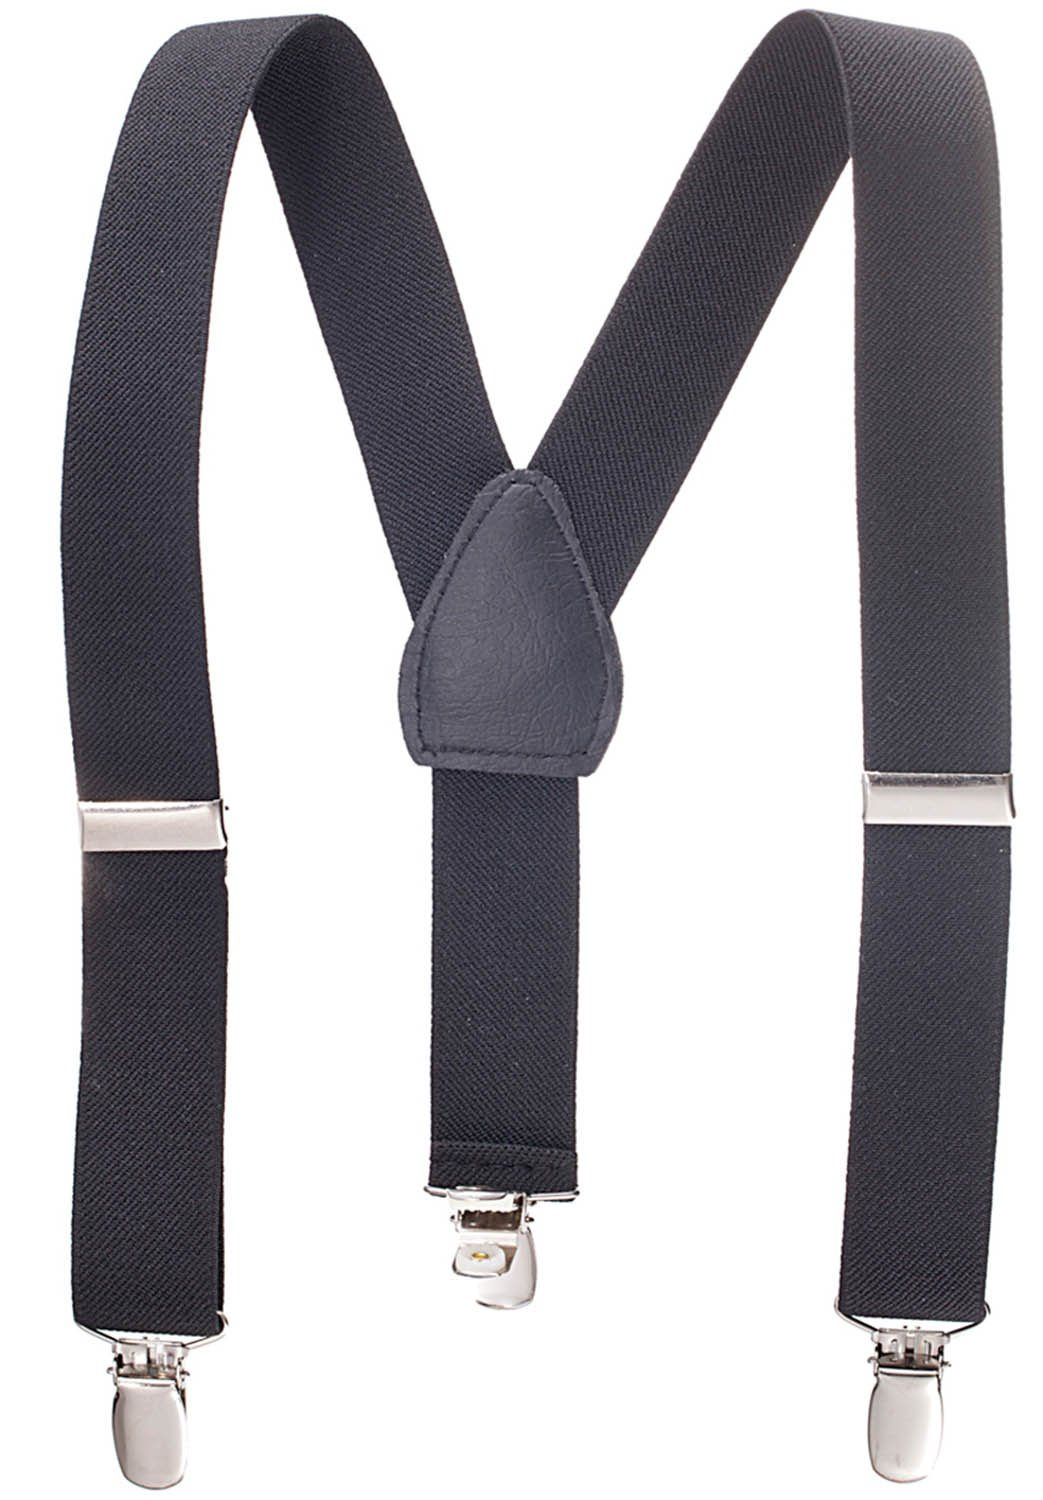 Suspenders for Kids - 1 Inch Suspender Perfect for Tuxedo - Black (26'')